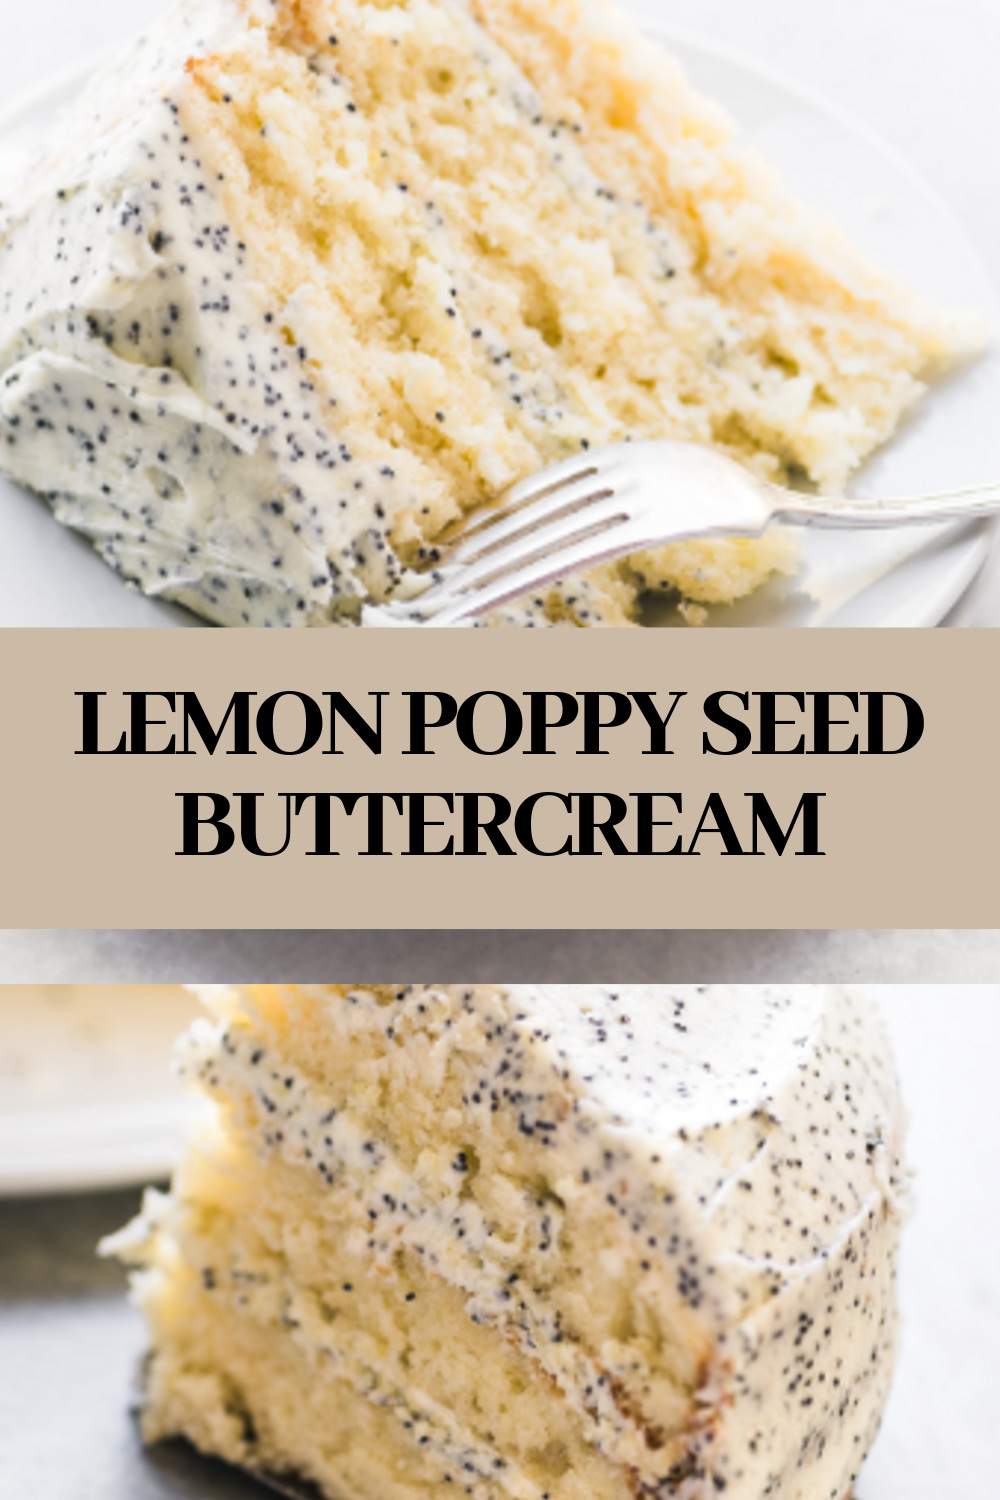 LEMON POPPY SEED BUTTERCREAM